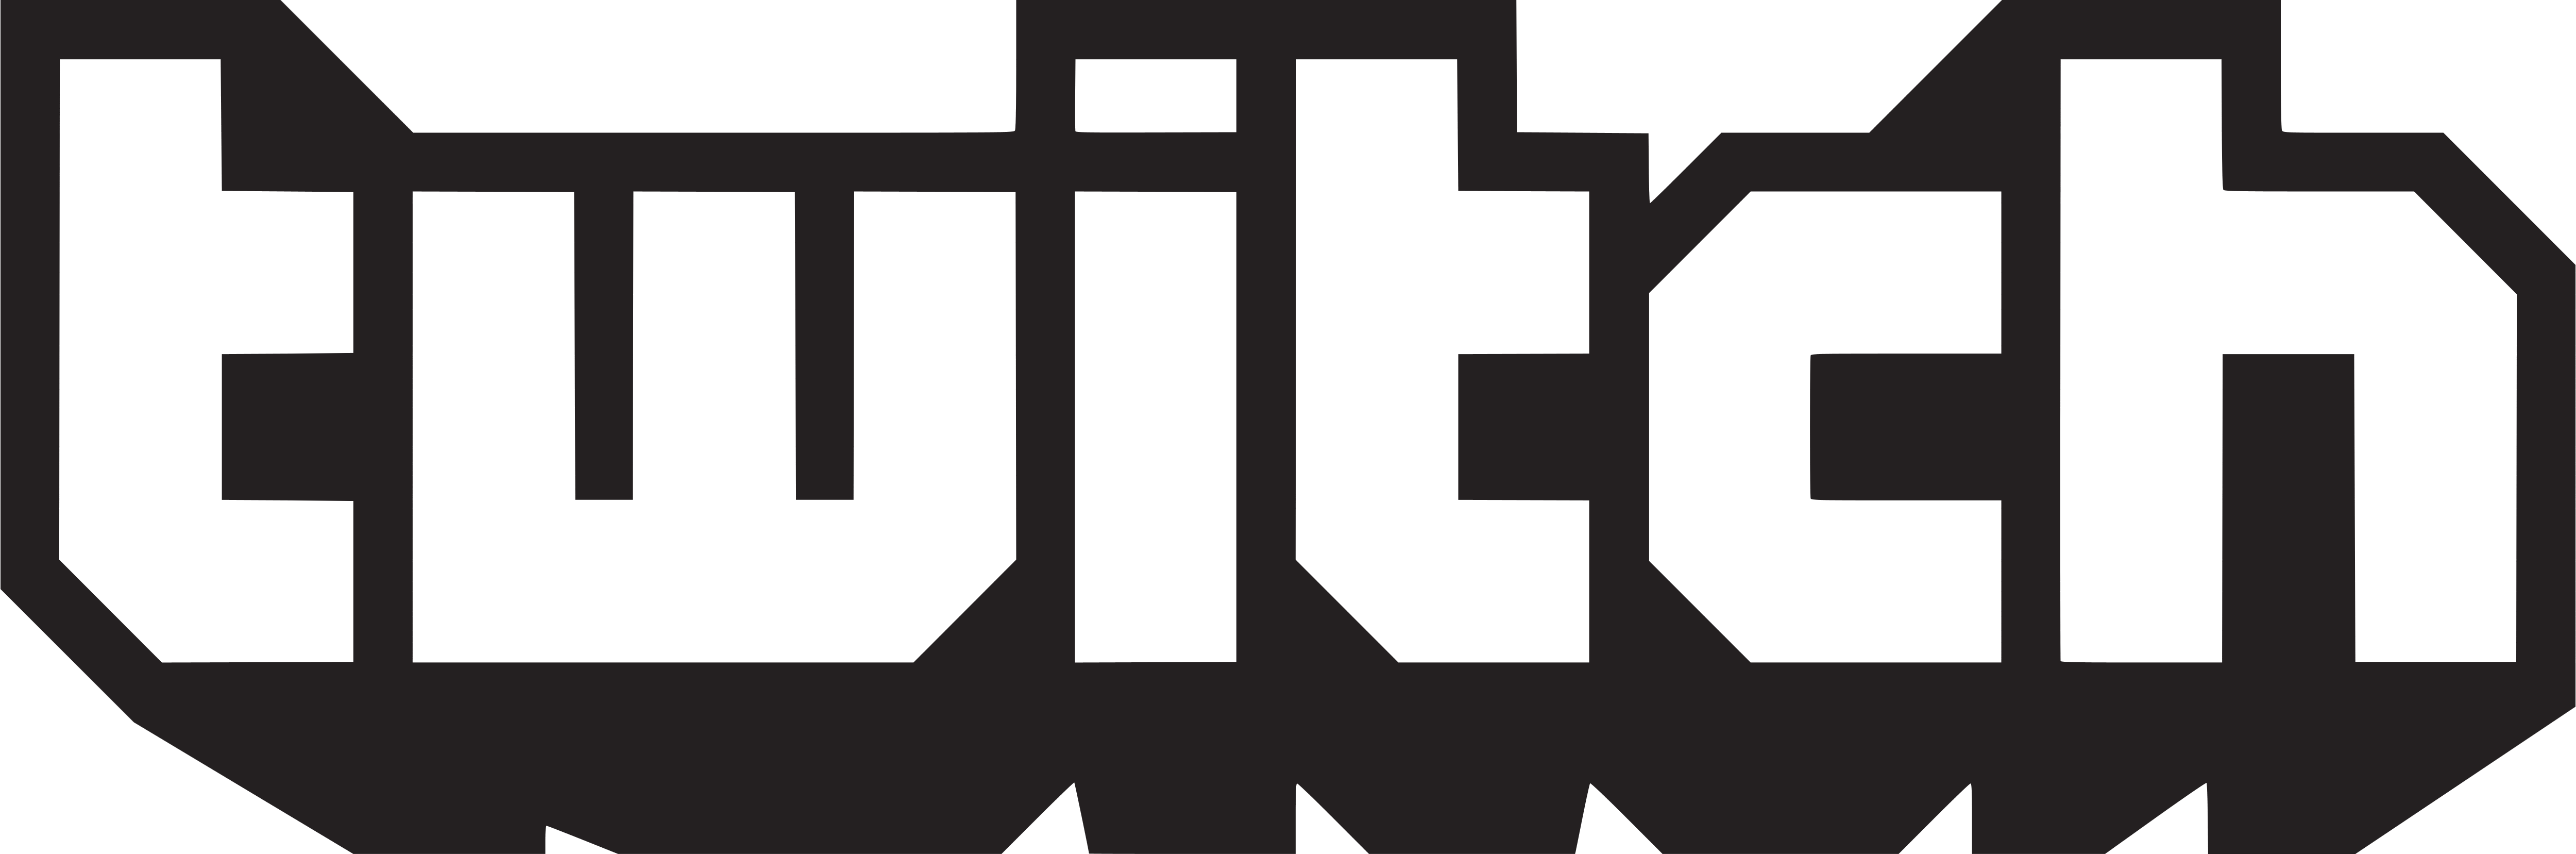 Twitch - Logos Download